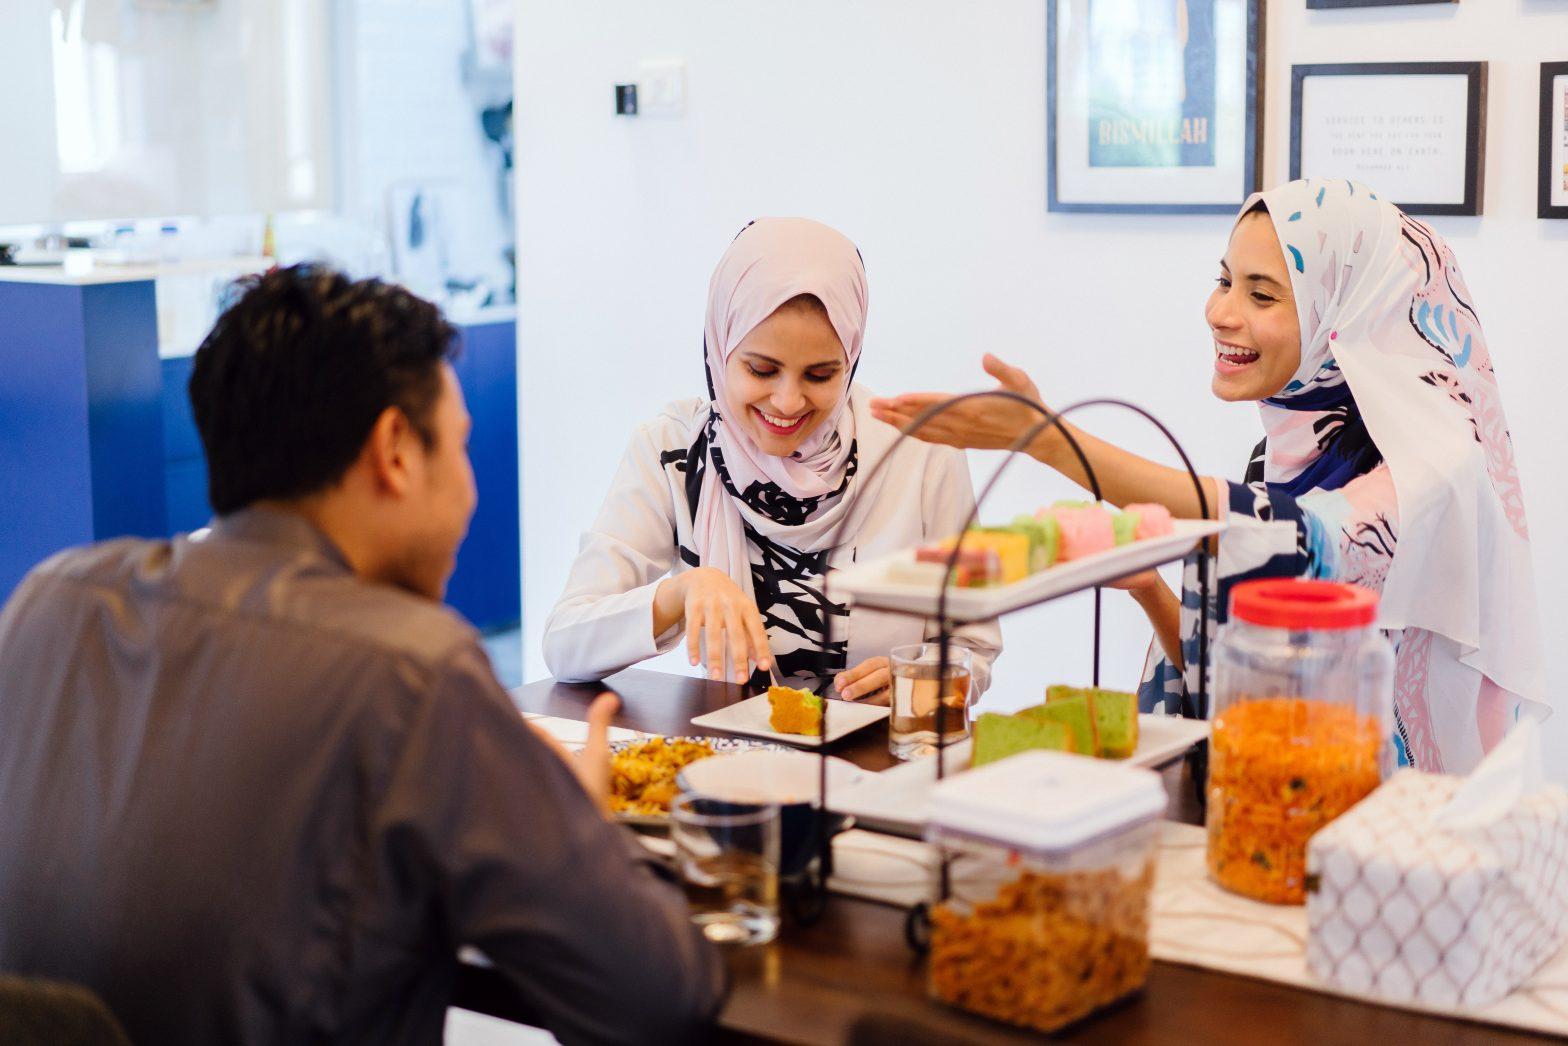 7 Healthy Eating Tips For Hari Raya